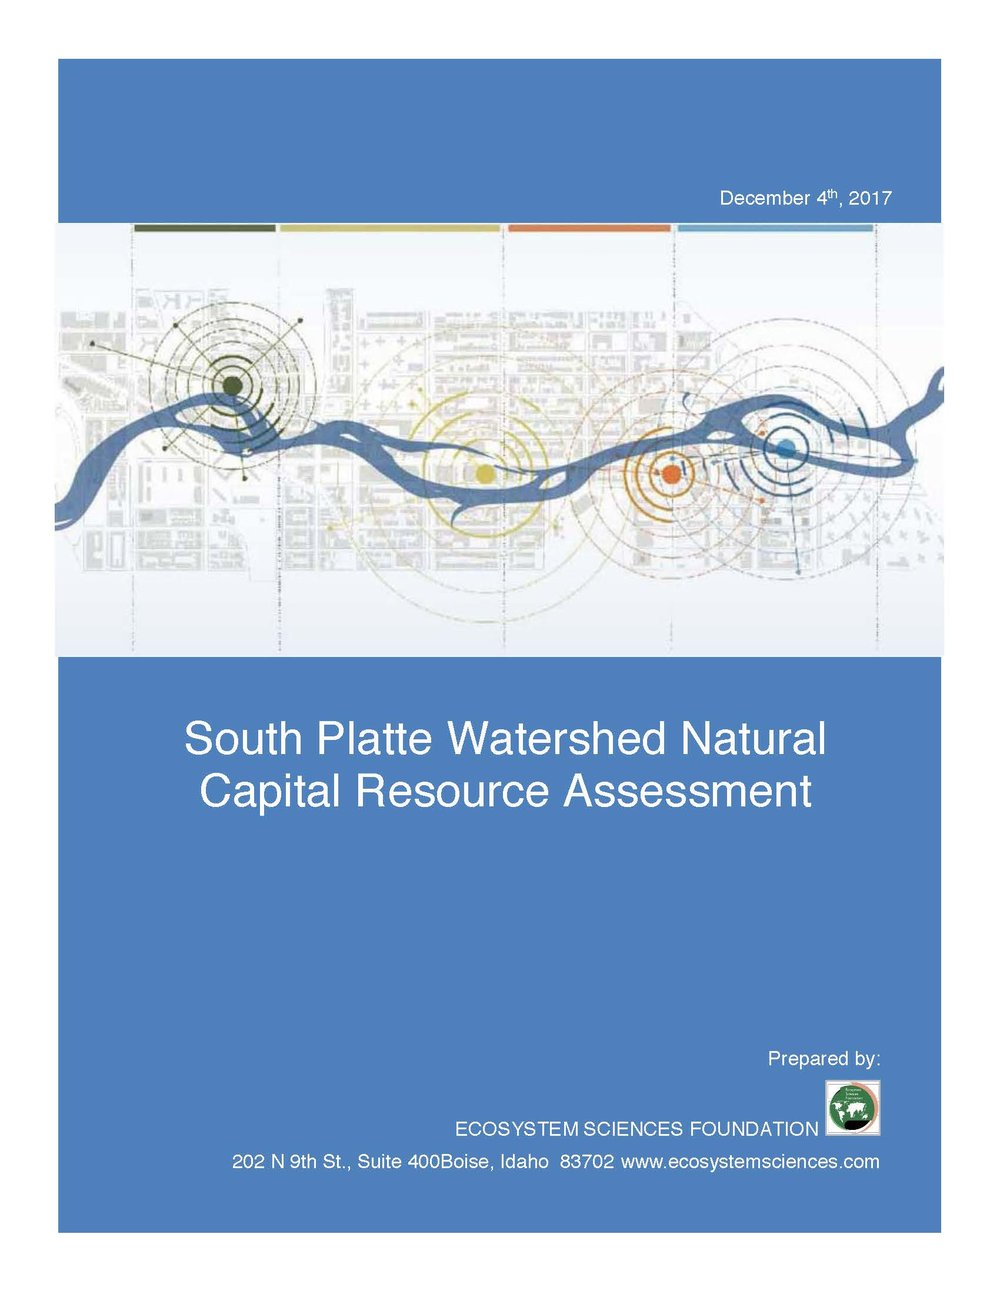 Cover_SouthPlatteWatershed_EarthEconomics_Dec2017.jpg